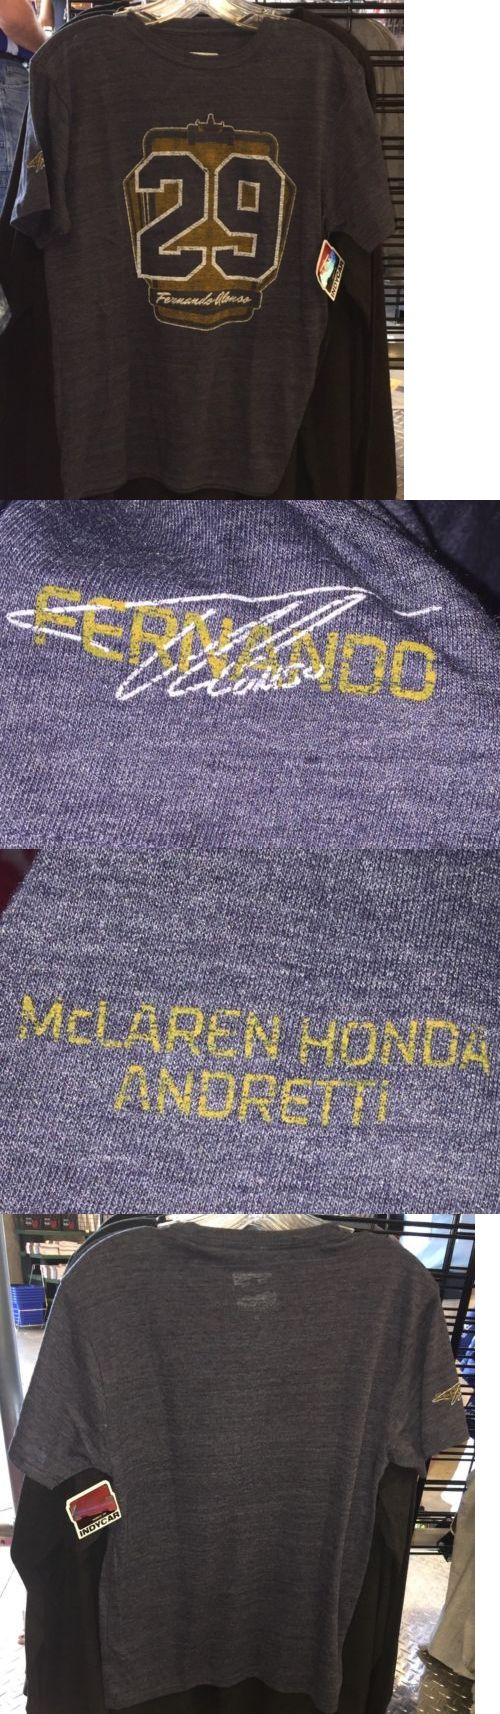 Racing-Indy 1228: Fernando Alonso Mclaren Honda Andretti New Indy 500 T-Shirt 101St Running Size L -> BUY IT NOW ONLY: $69.99 on eBay!